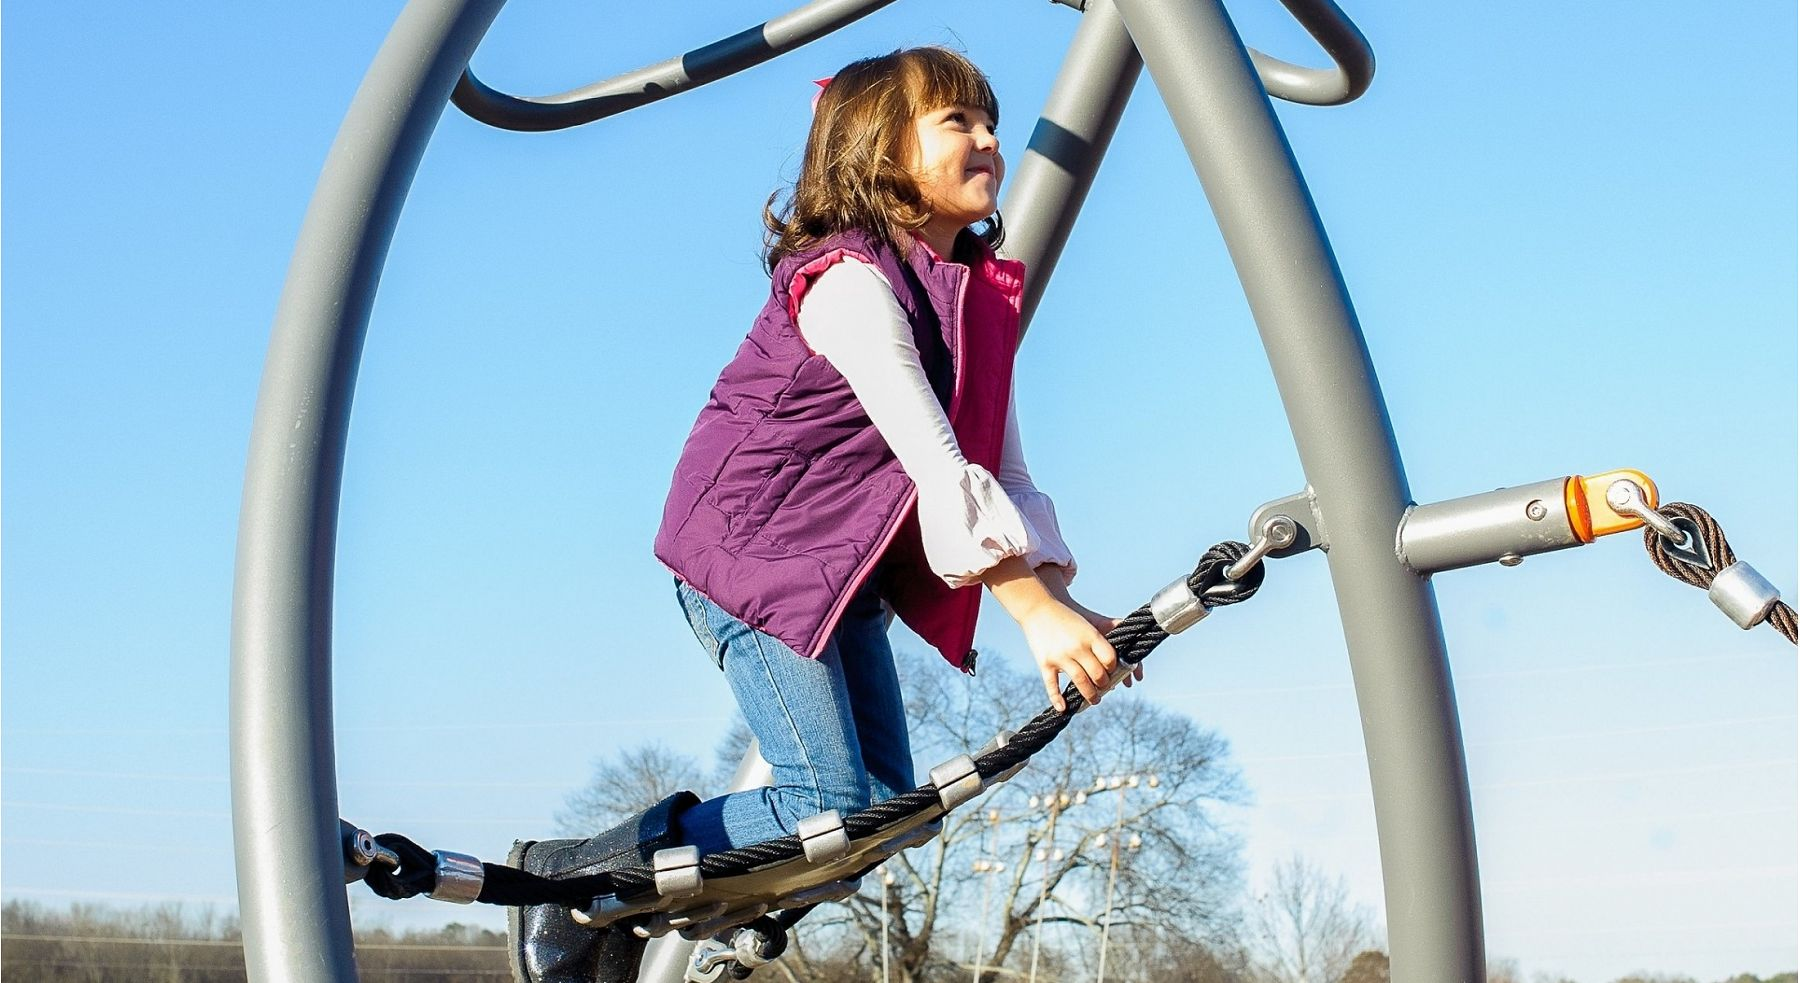 Girl on IONiX Climber